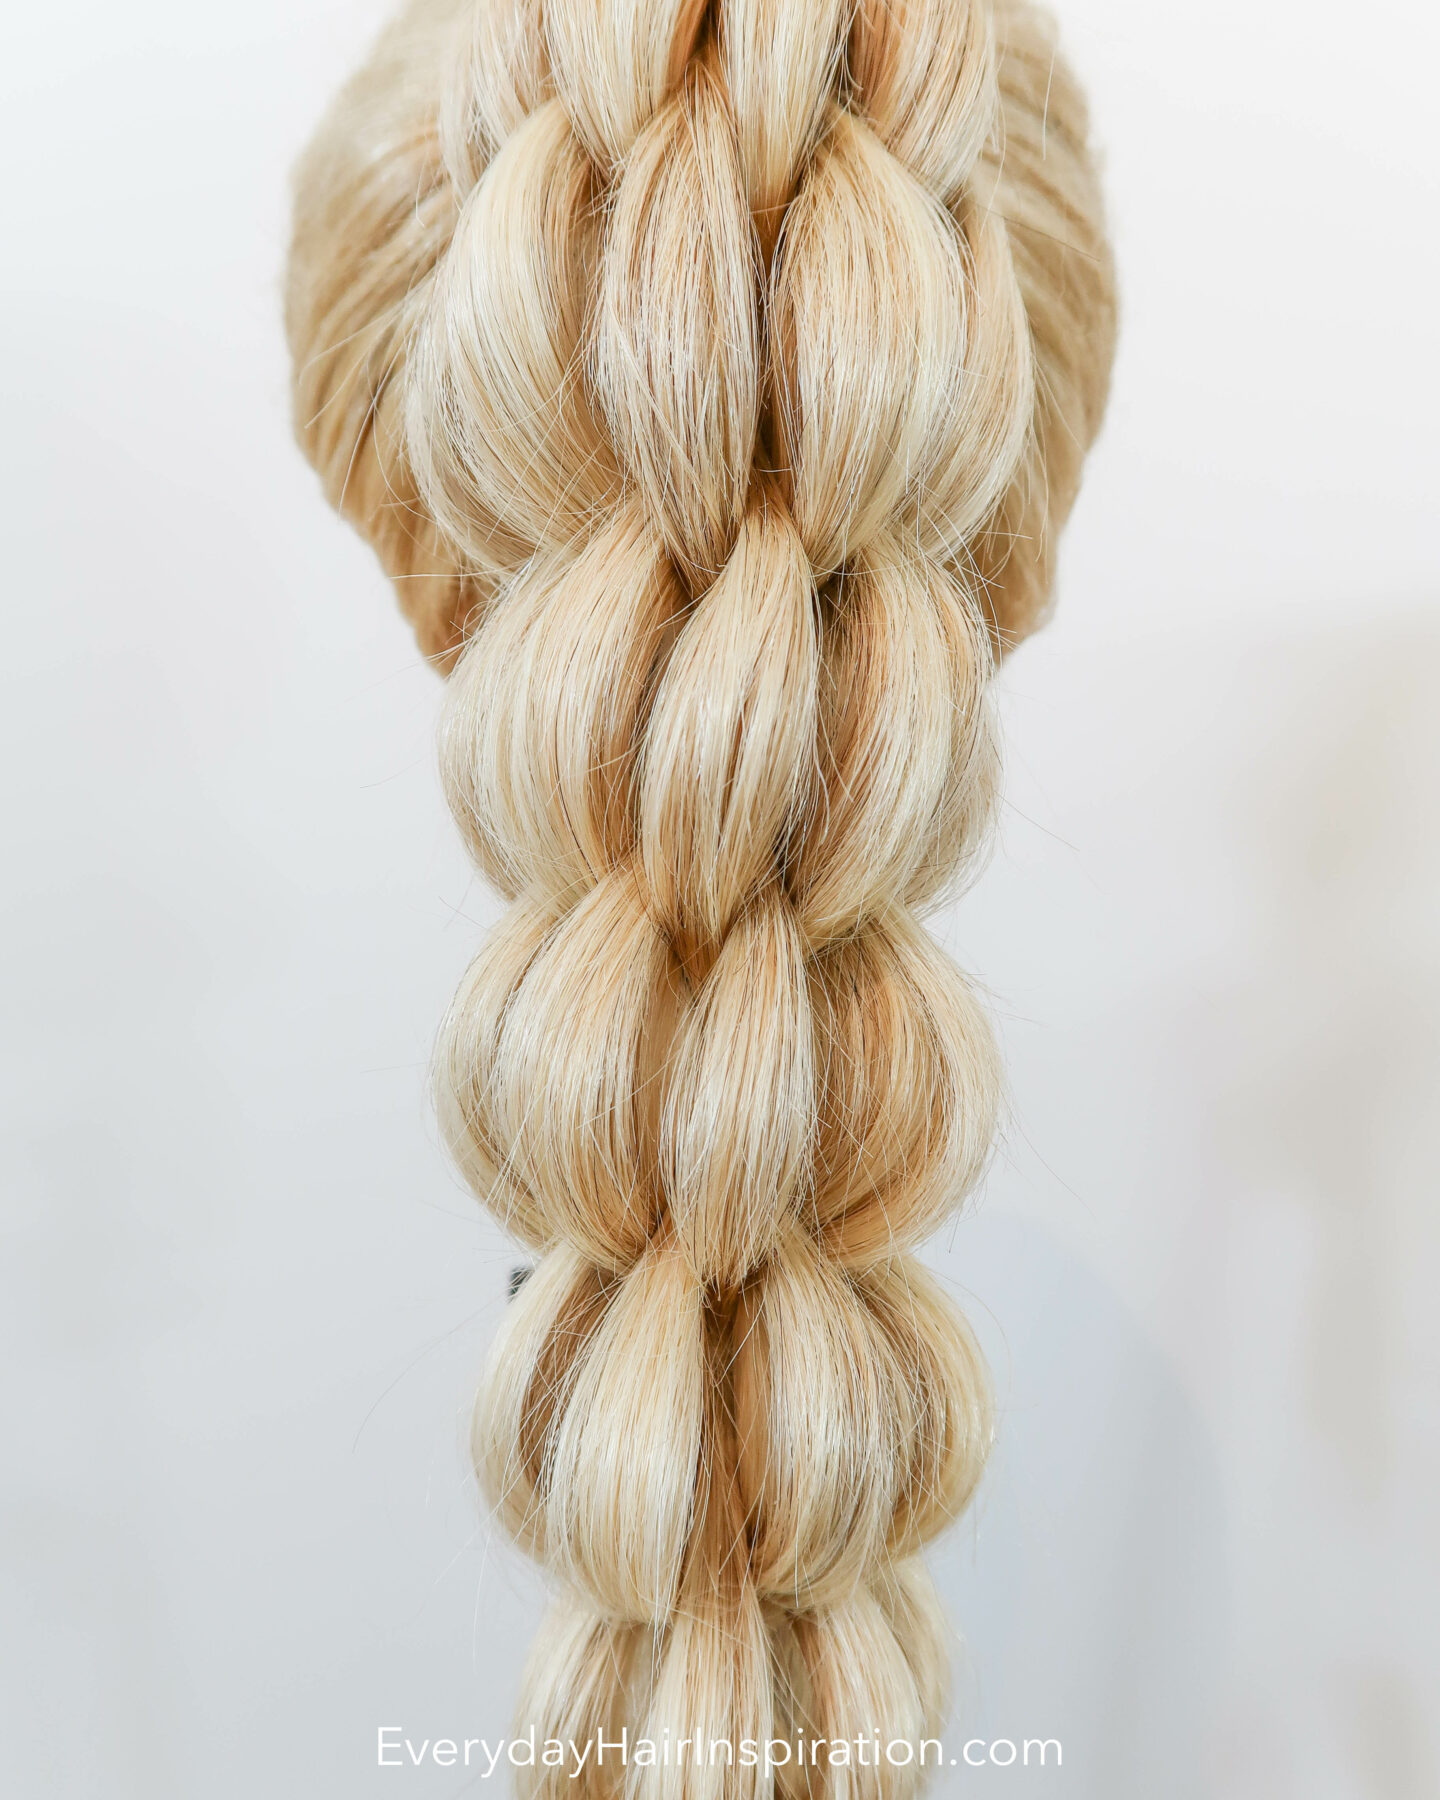 Blonde hairdresser doll seen from the back with a high ponytail in the hair. The ponytail is braided into a 3d pull through braid. Closeup of the hair.